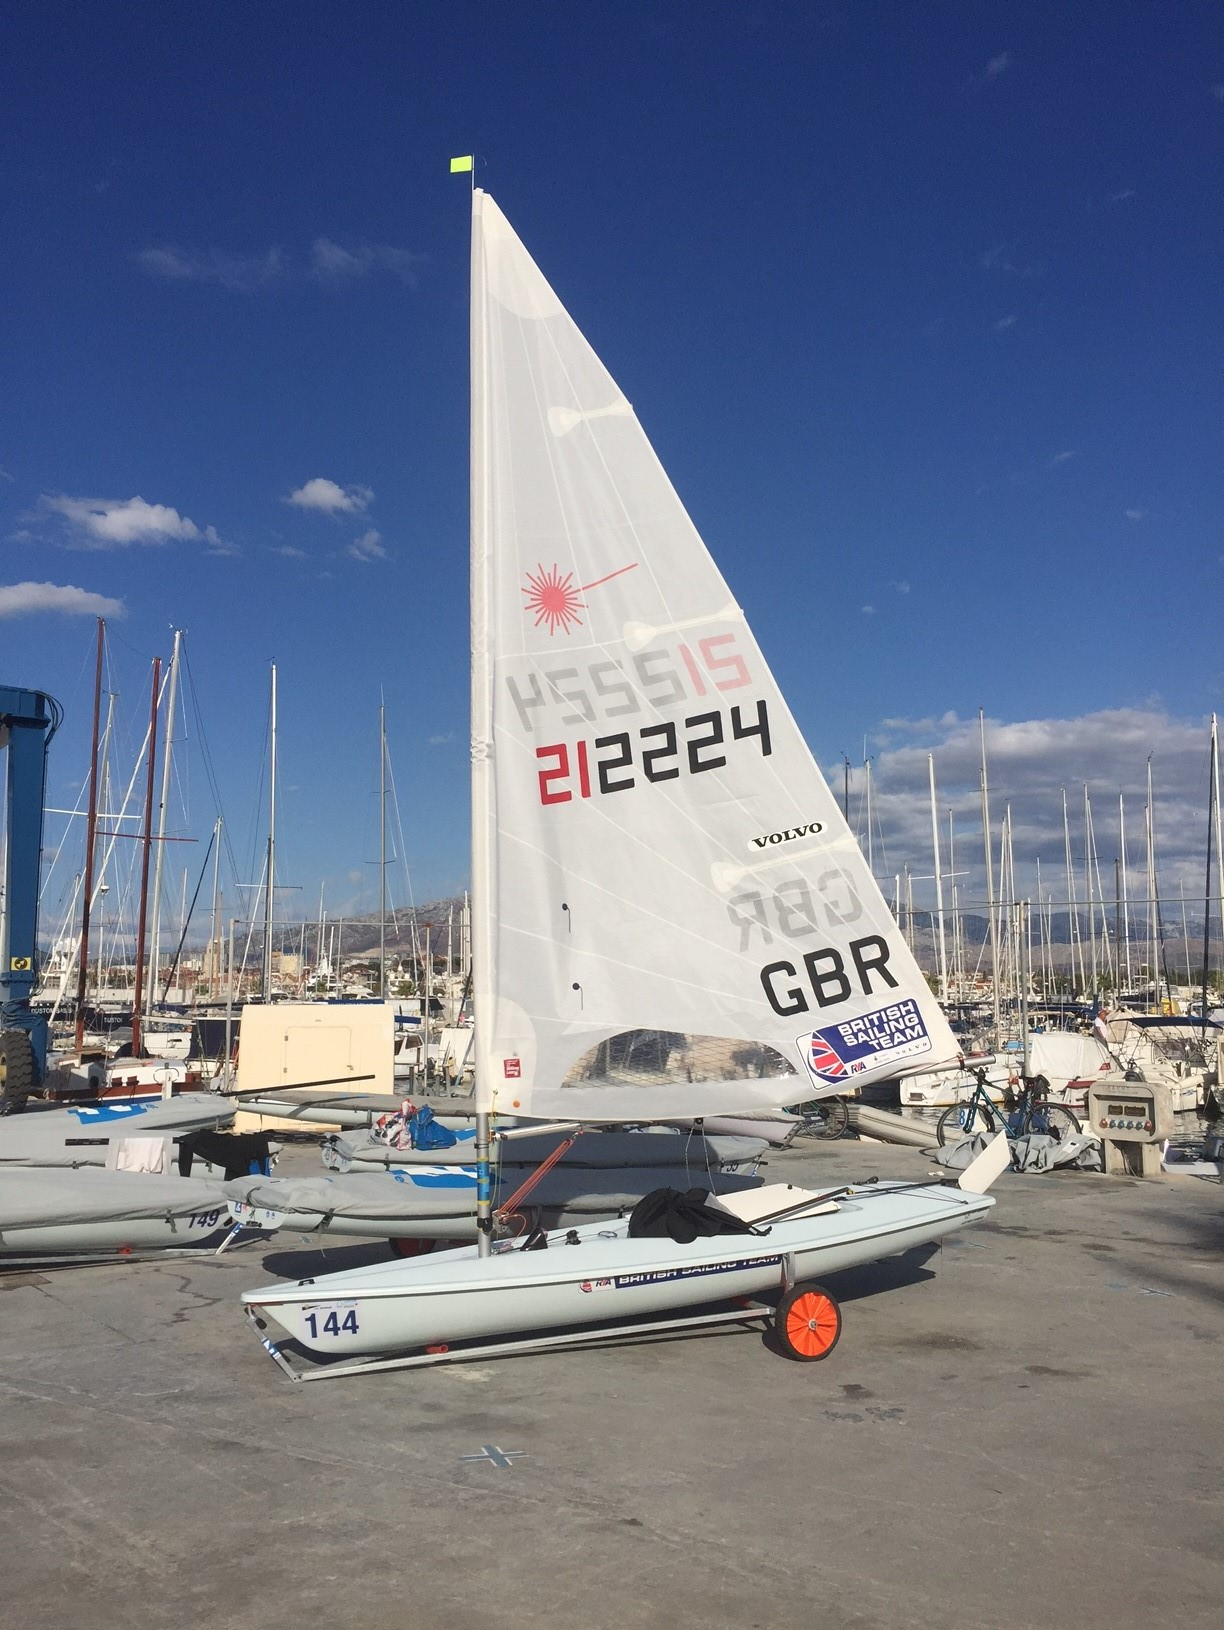 After flying in, collecting my charter boat and setting her up I was ready to go for the start of the competition!